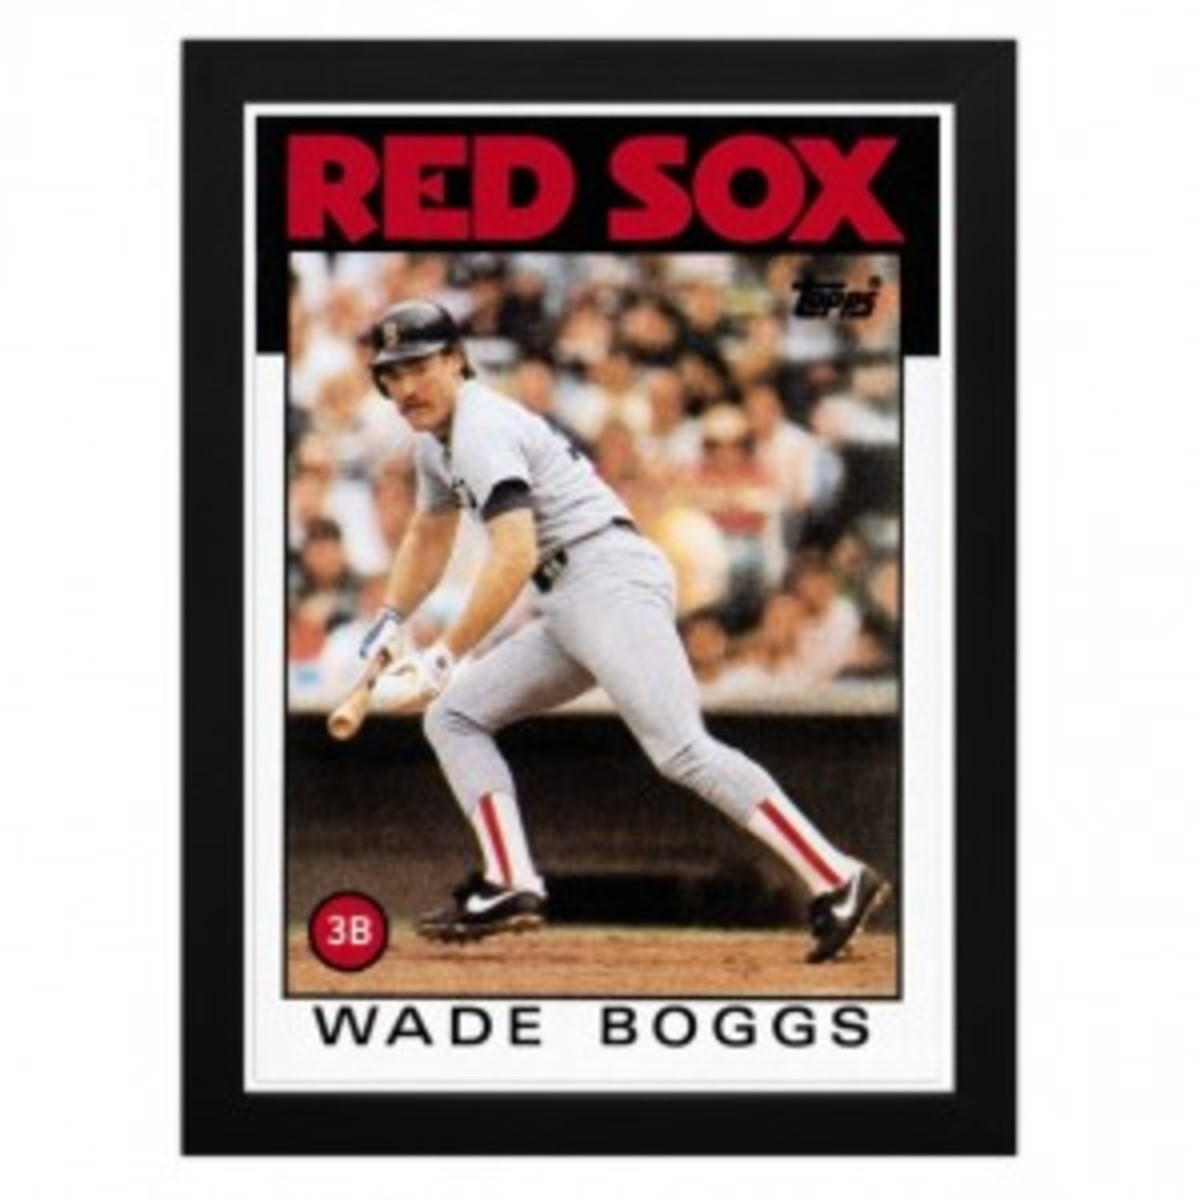 wadeboggs_1986_510_black